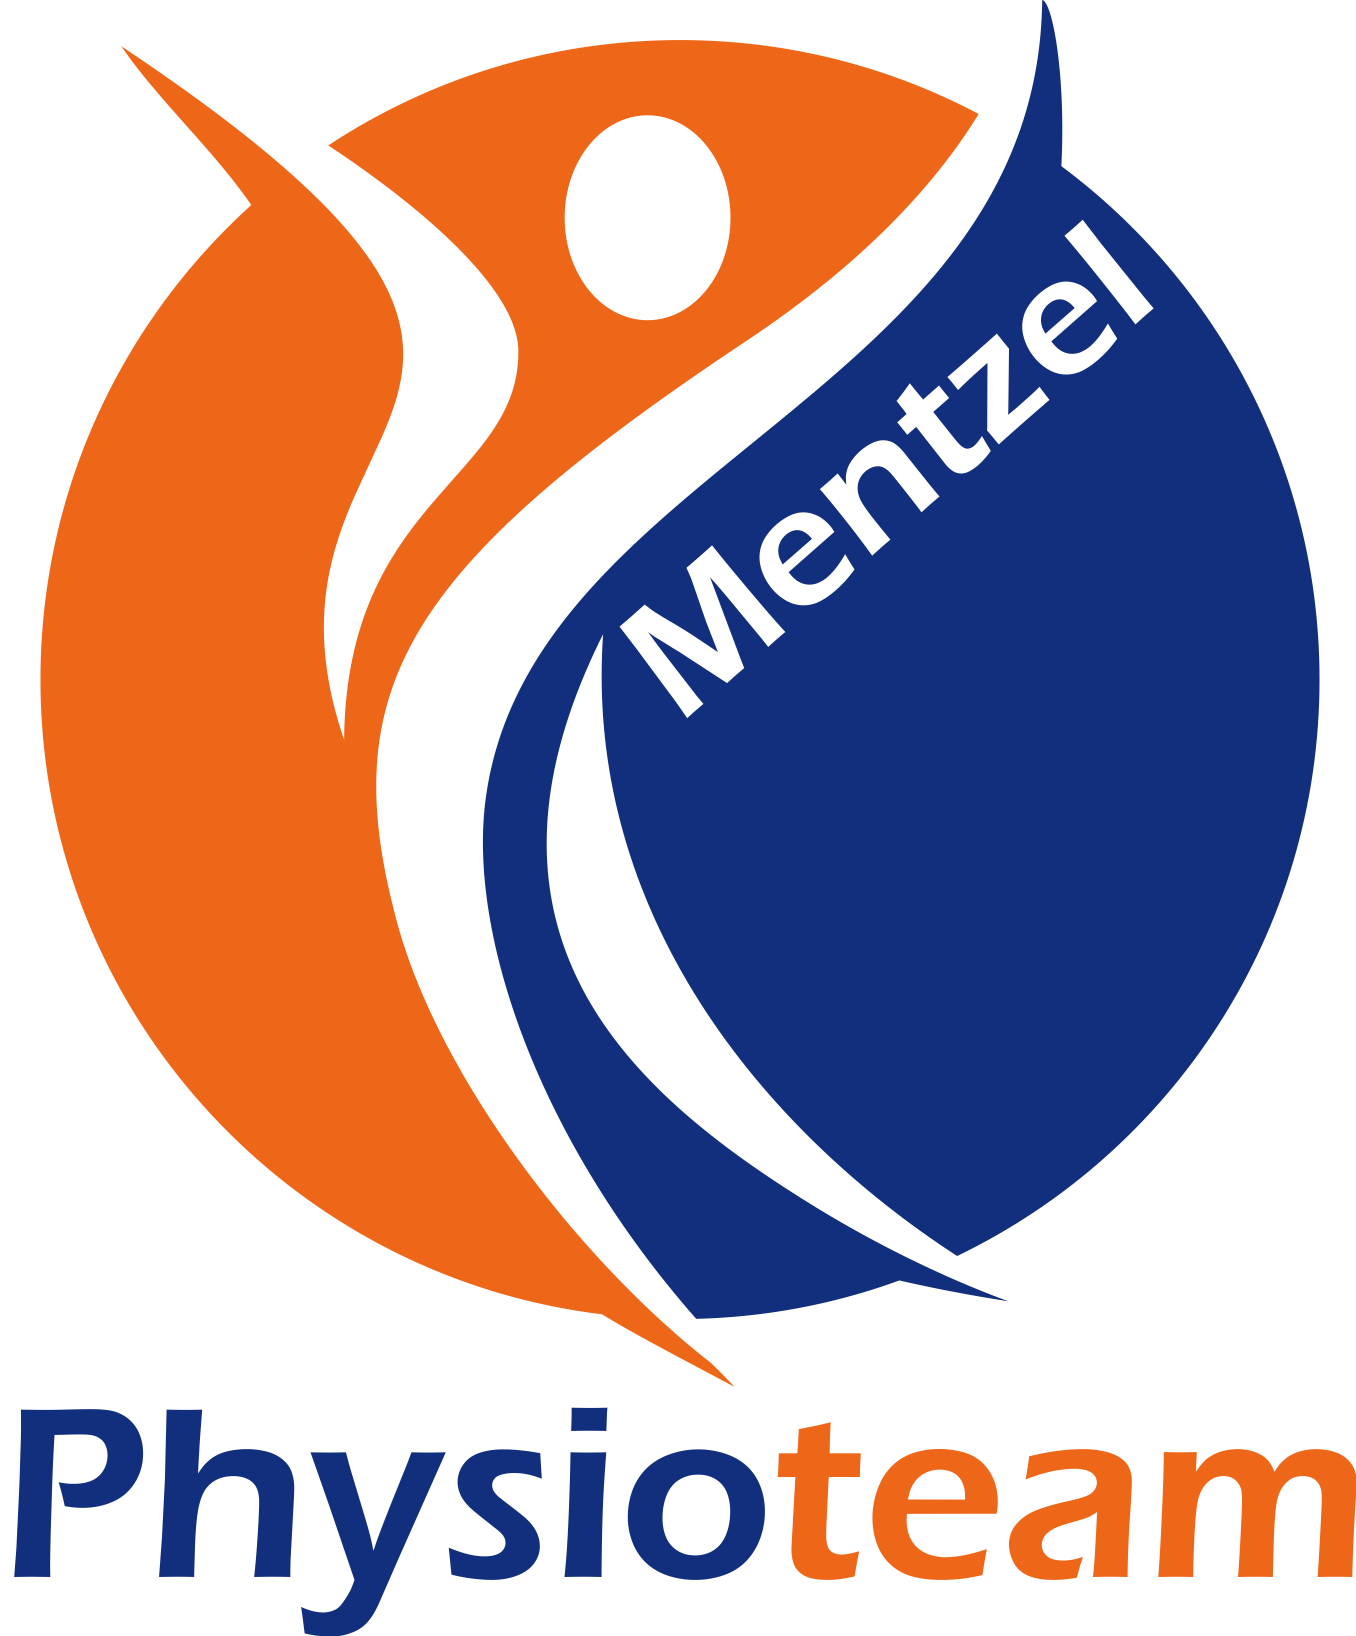 Physioteam Mentzel - Physiotherapie Haeder Logo